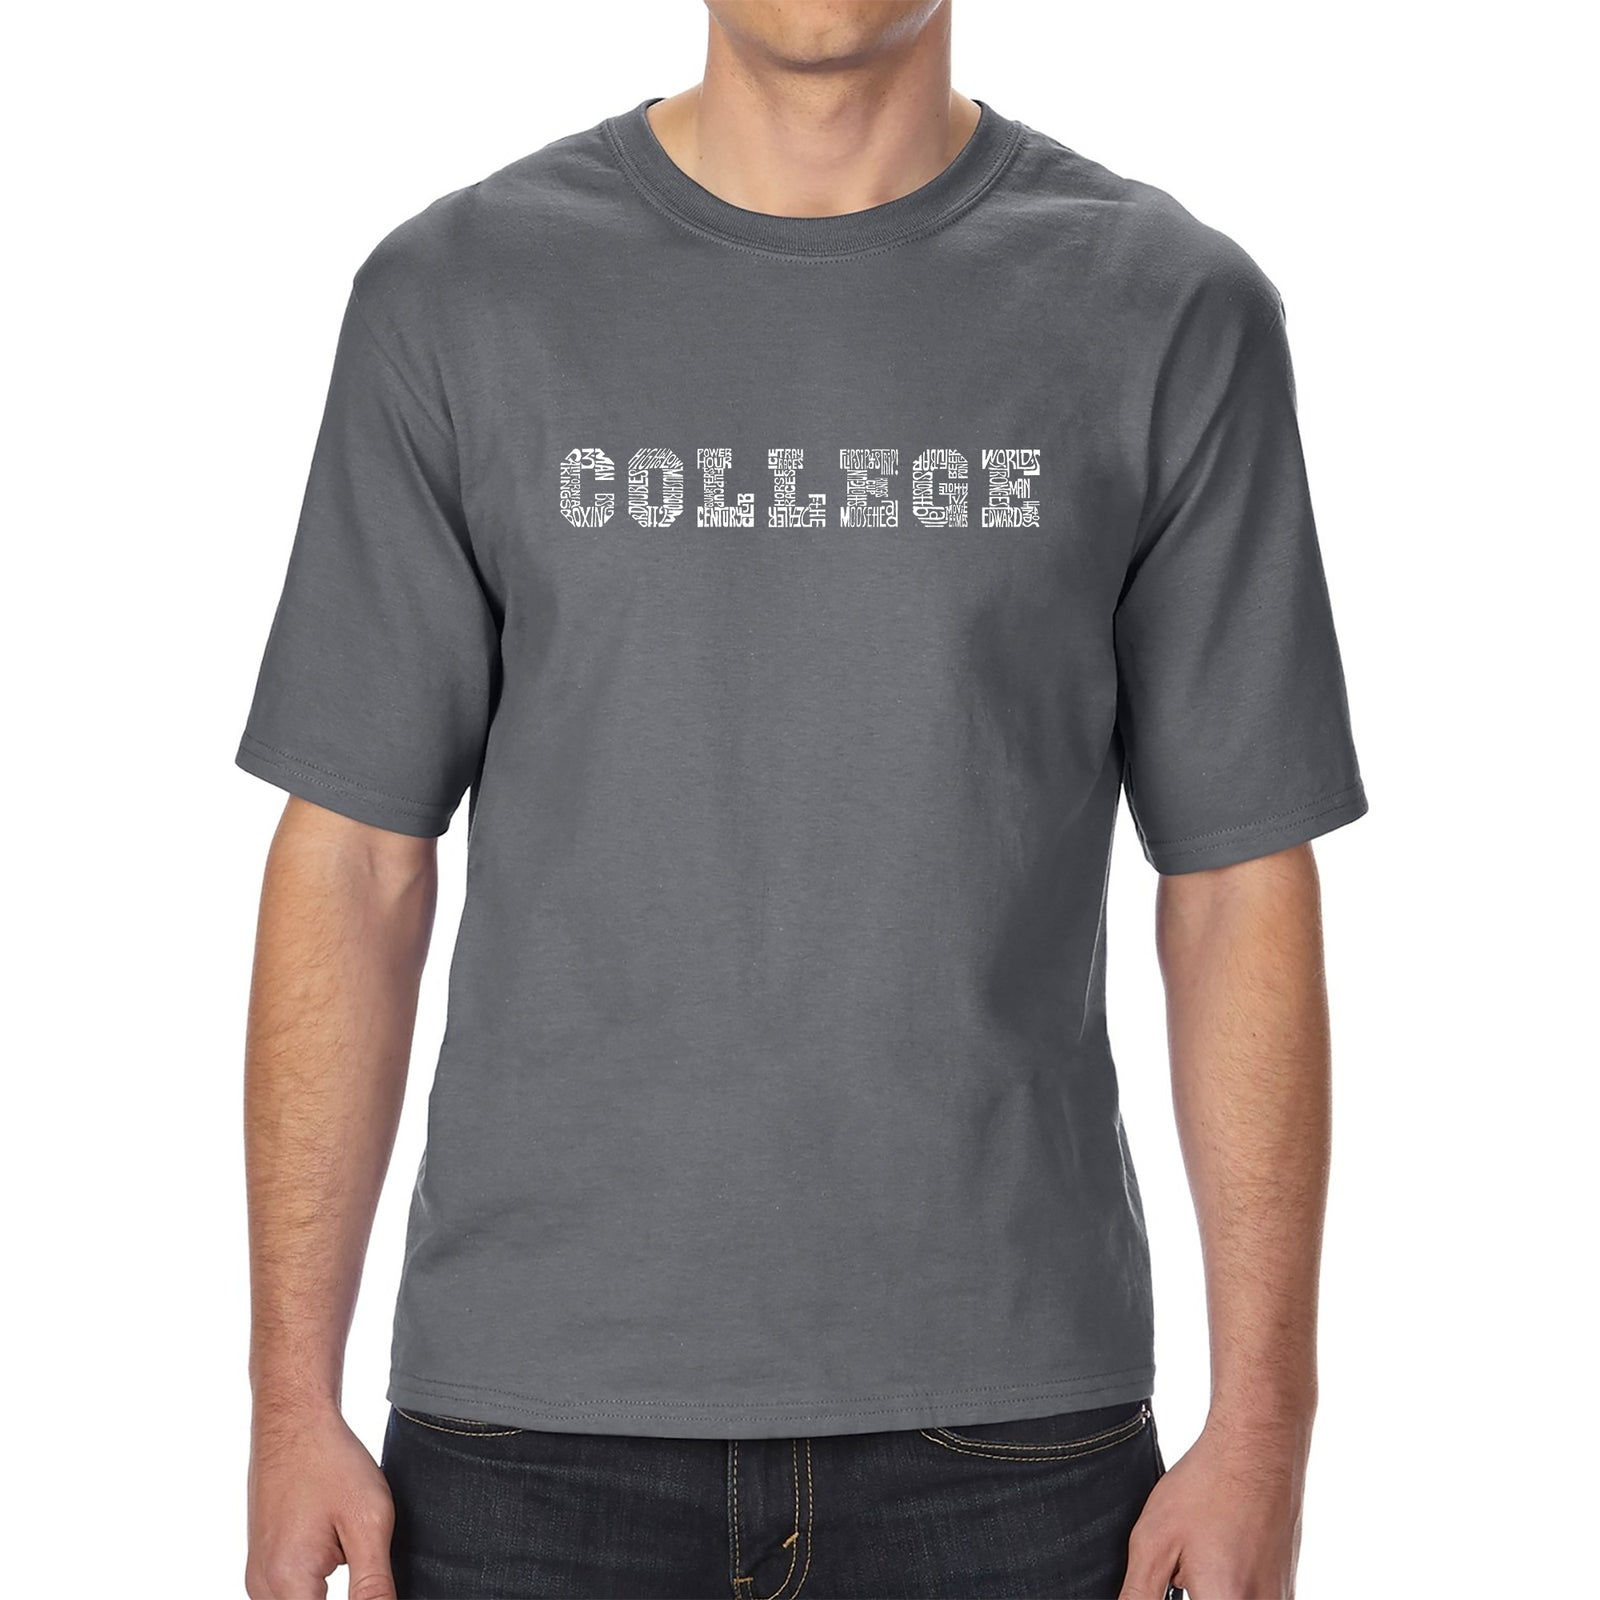 Men's Tall and Long Word Art T-shirt - COLLEGE DRINKING GAMES